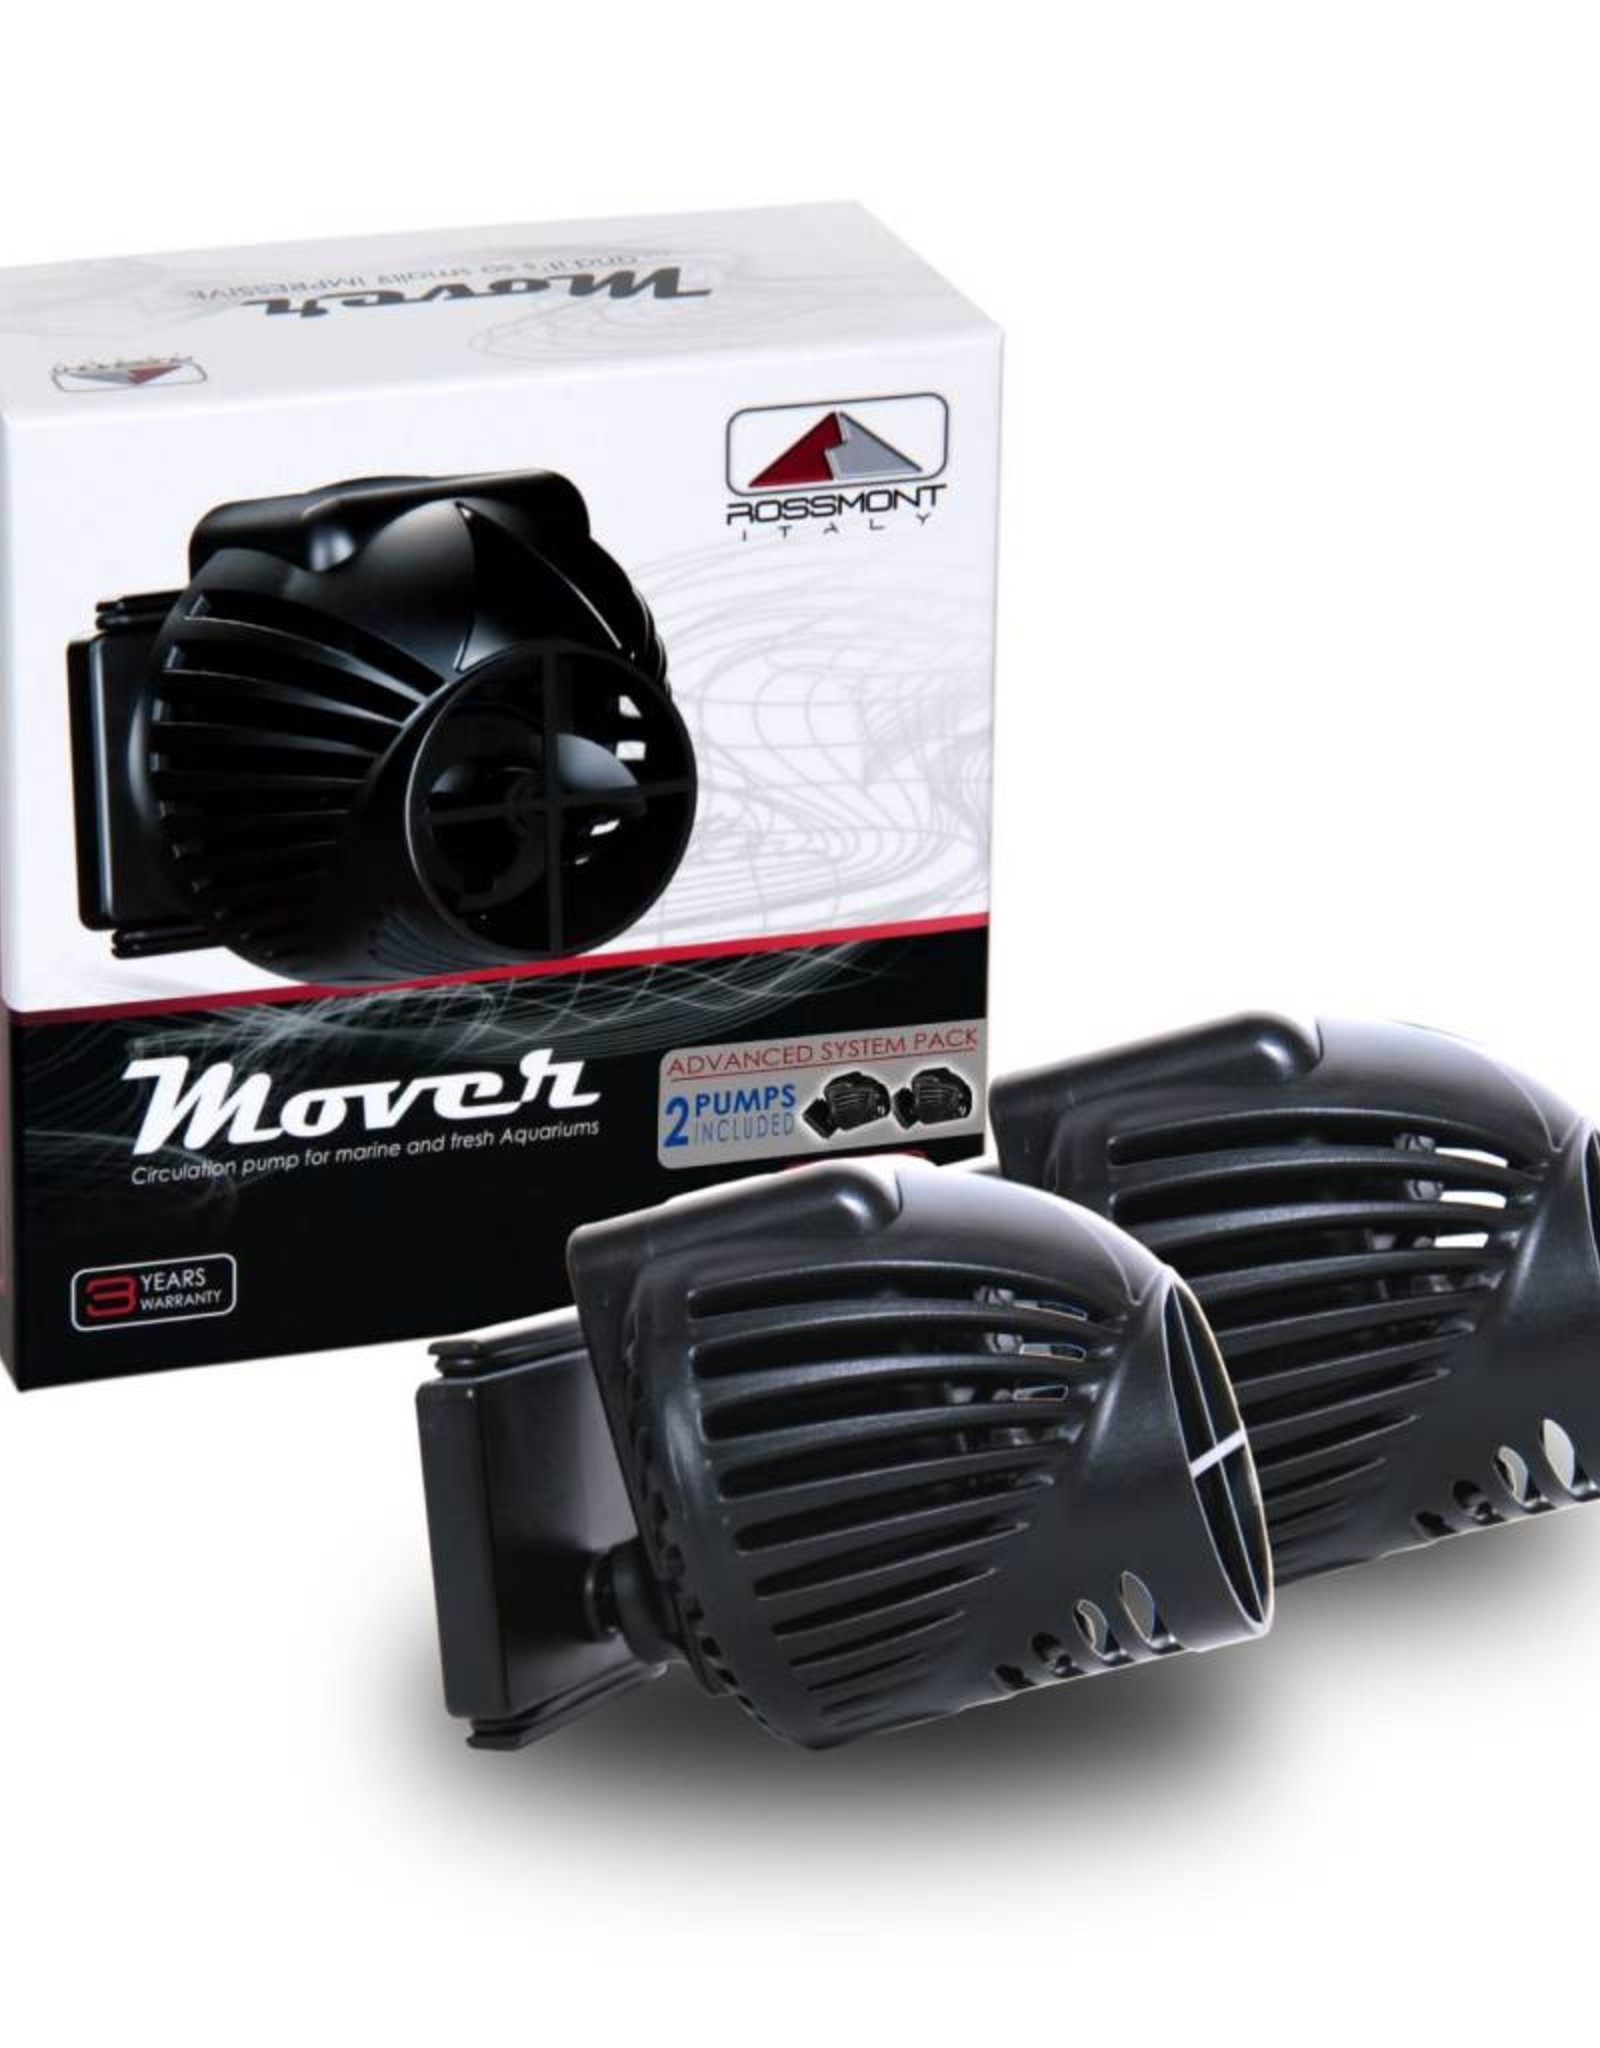 ROSSMONT MOVER PACK M1200 PUMPS